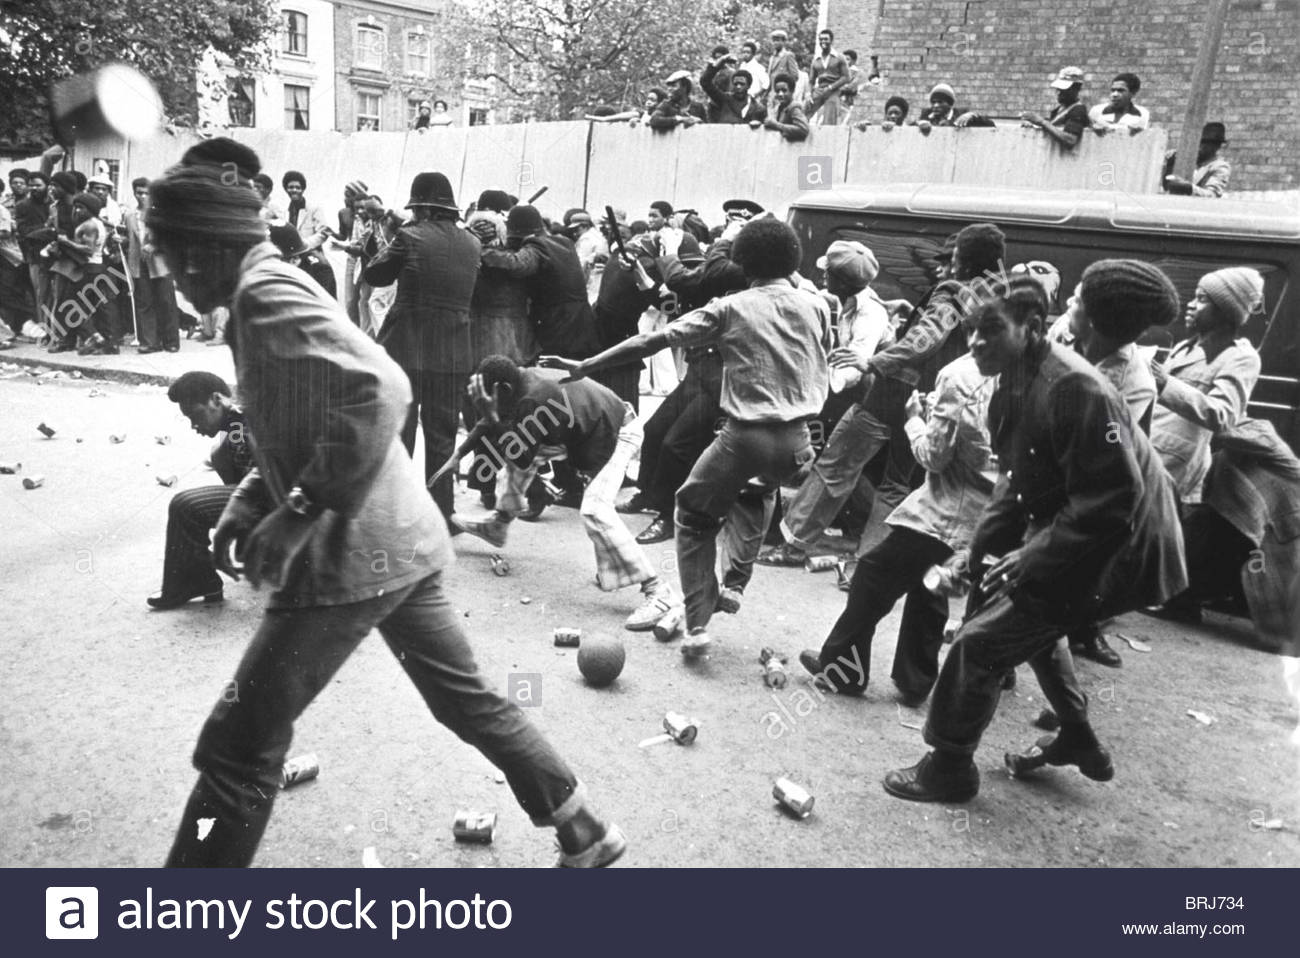 / ( 60231d ) RIOTING AT THE CARNIVAL NOTTING HILL CARNIVAL, LONDON 1976 - Stock Image